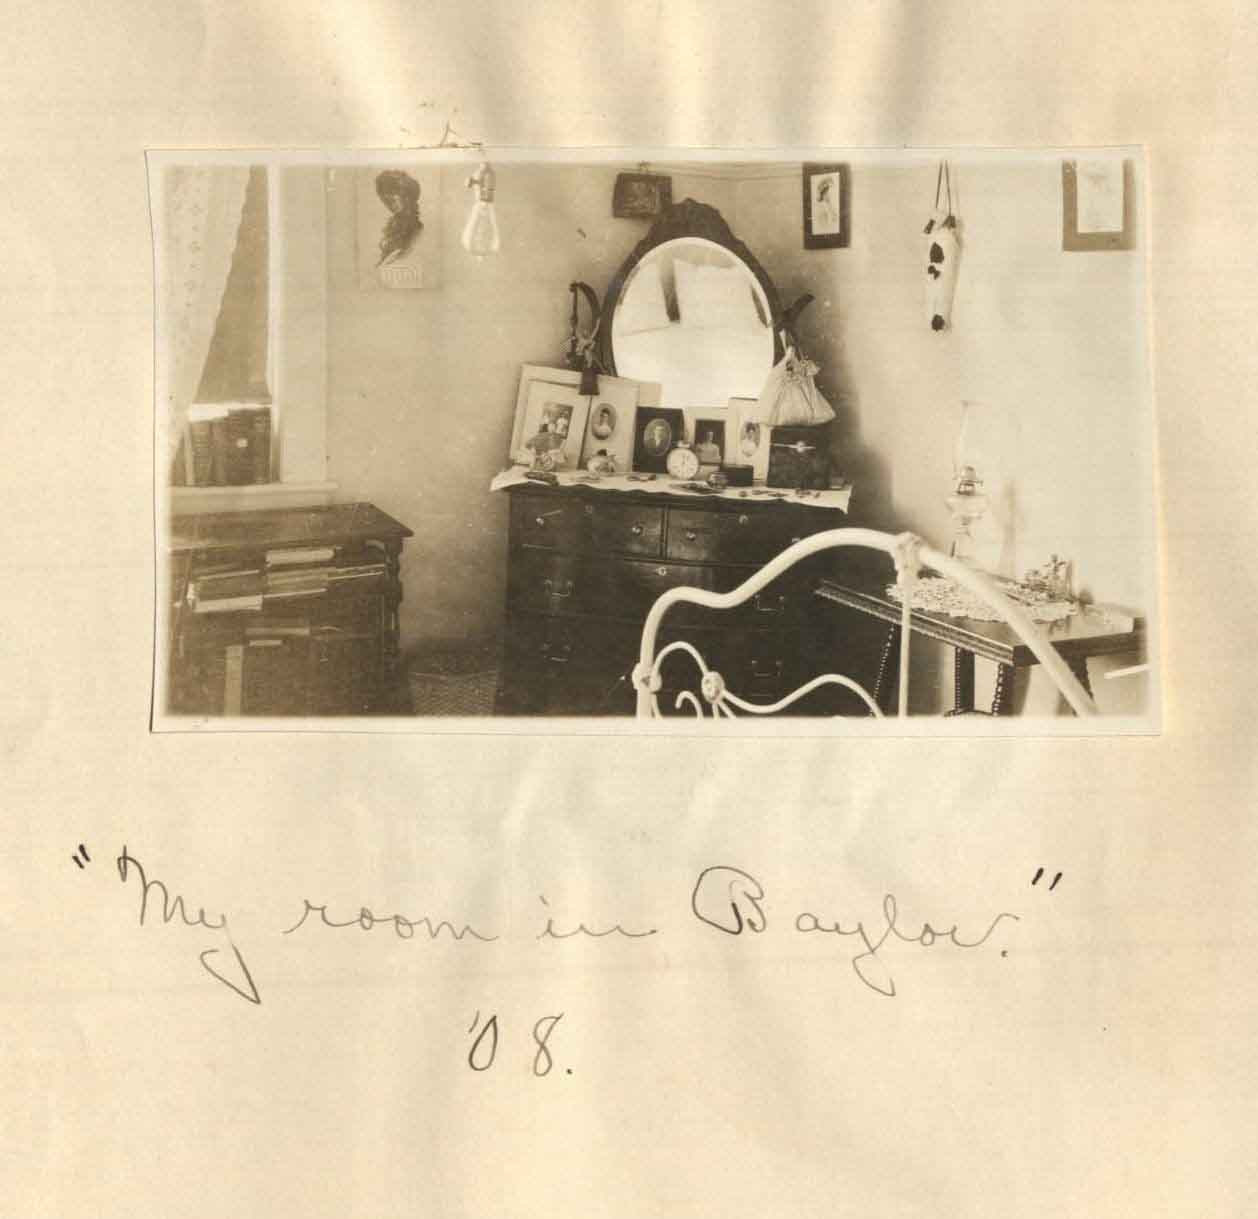 Mary McCaulay Maxwell's Rooom at Baylor, 1908